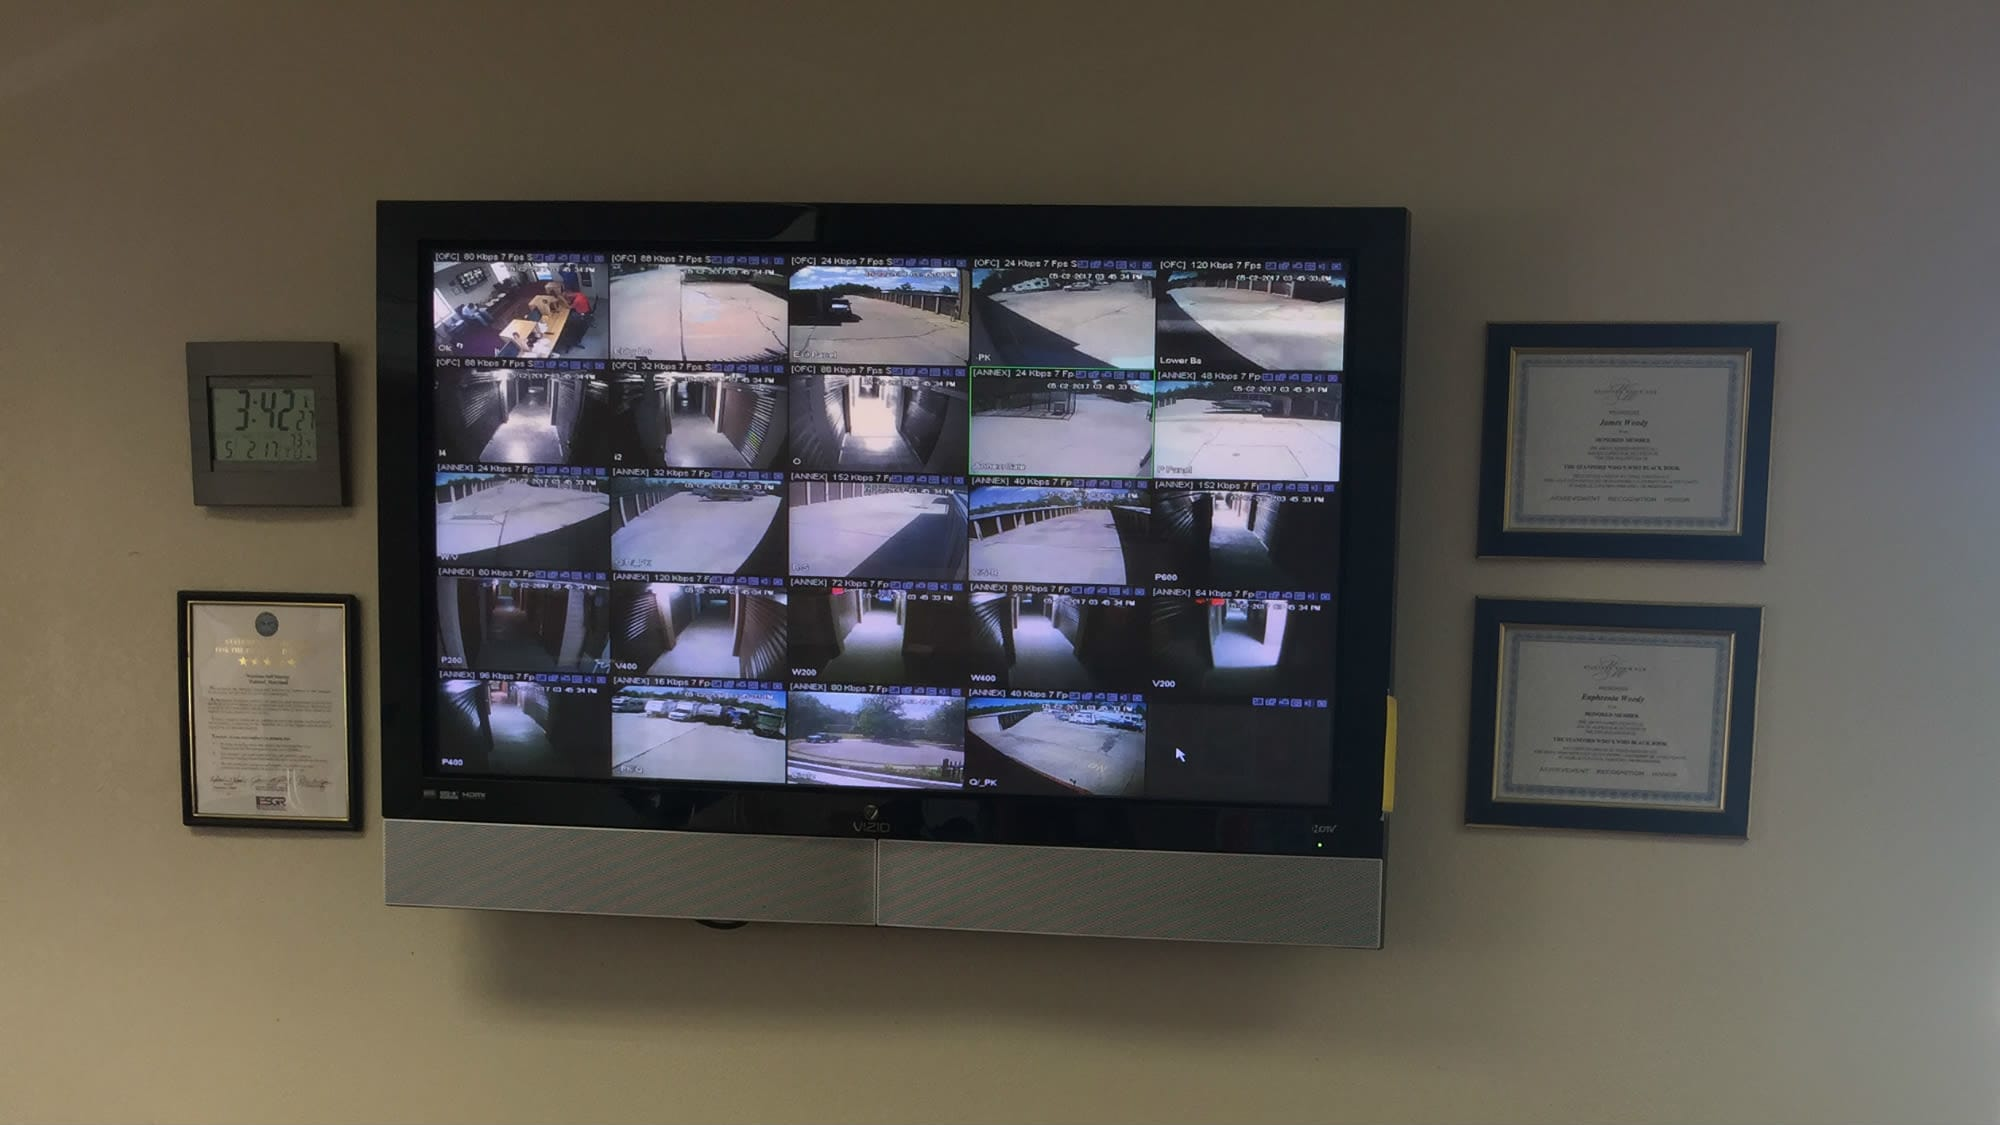 Security monitor at Westlake Self Storage in Waldorf, MD